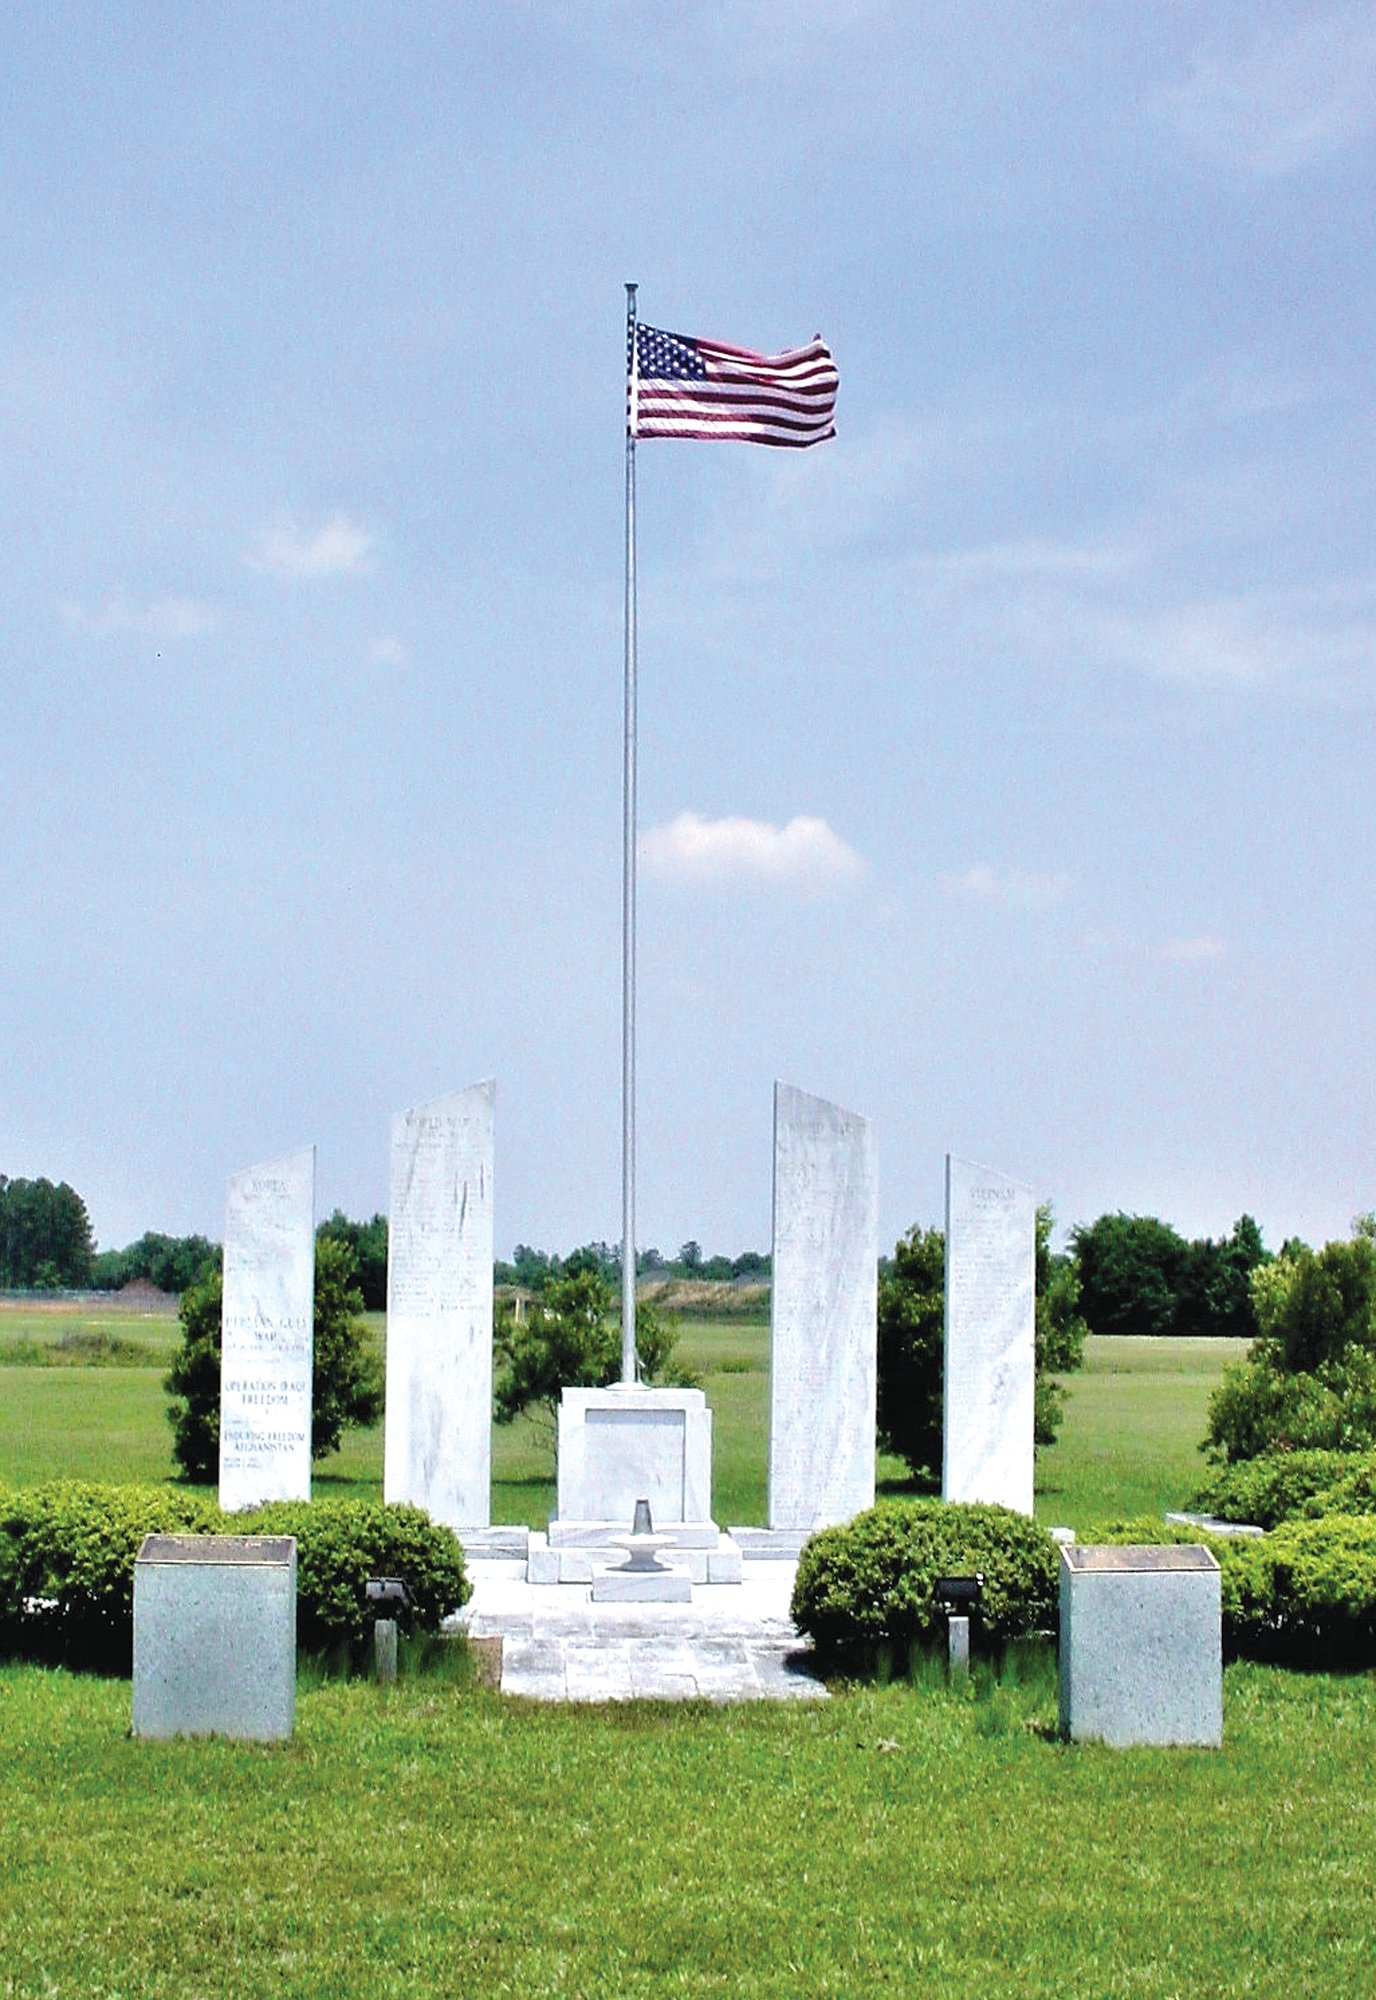 Mabry Memorial, named for Gen. George Mabry, in Sumter honors military members who have given their lives in service.